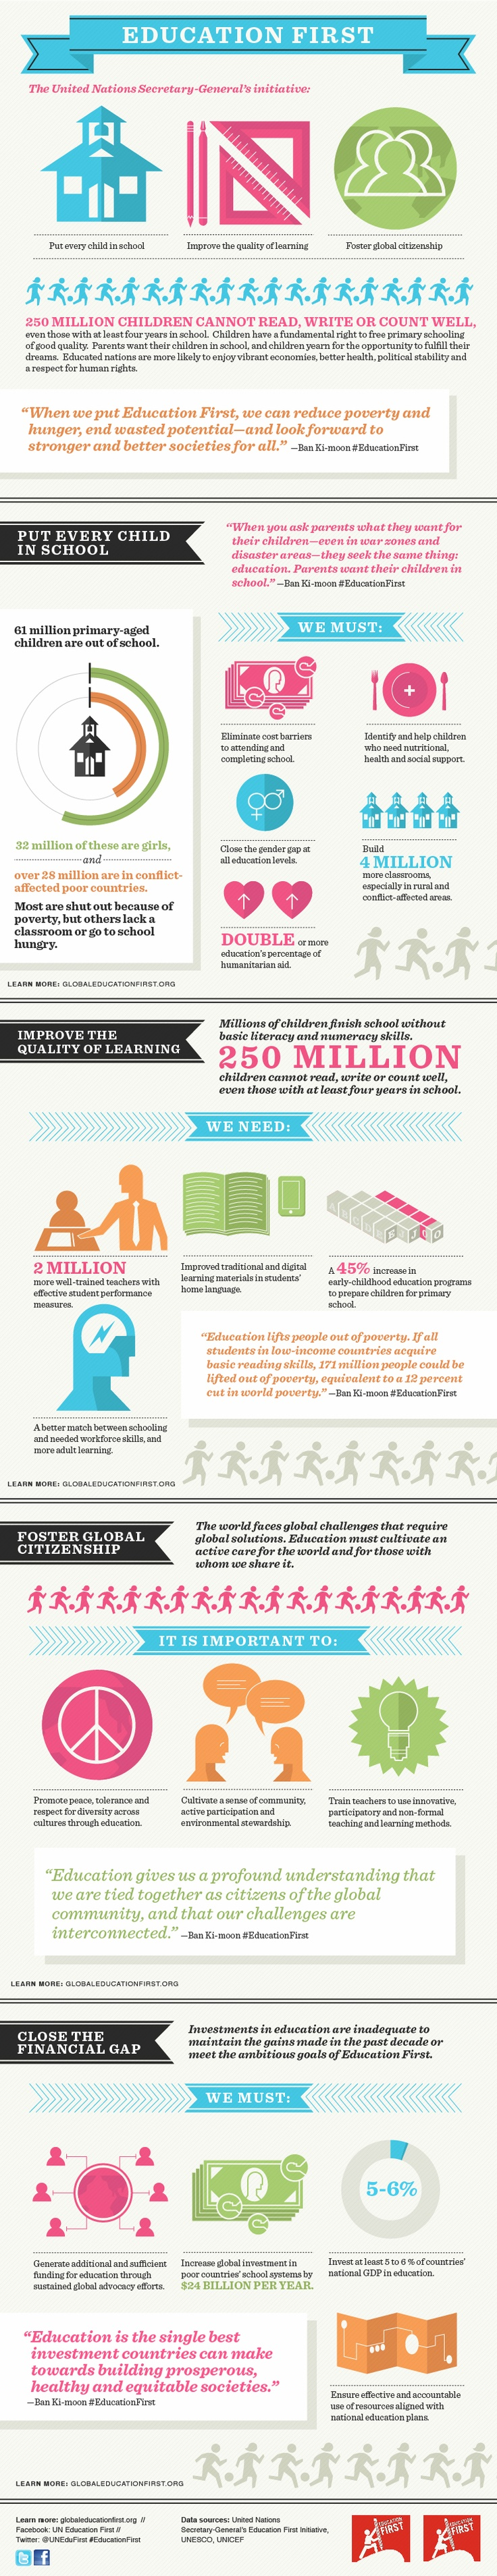 Educational Global Education First Initiative